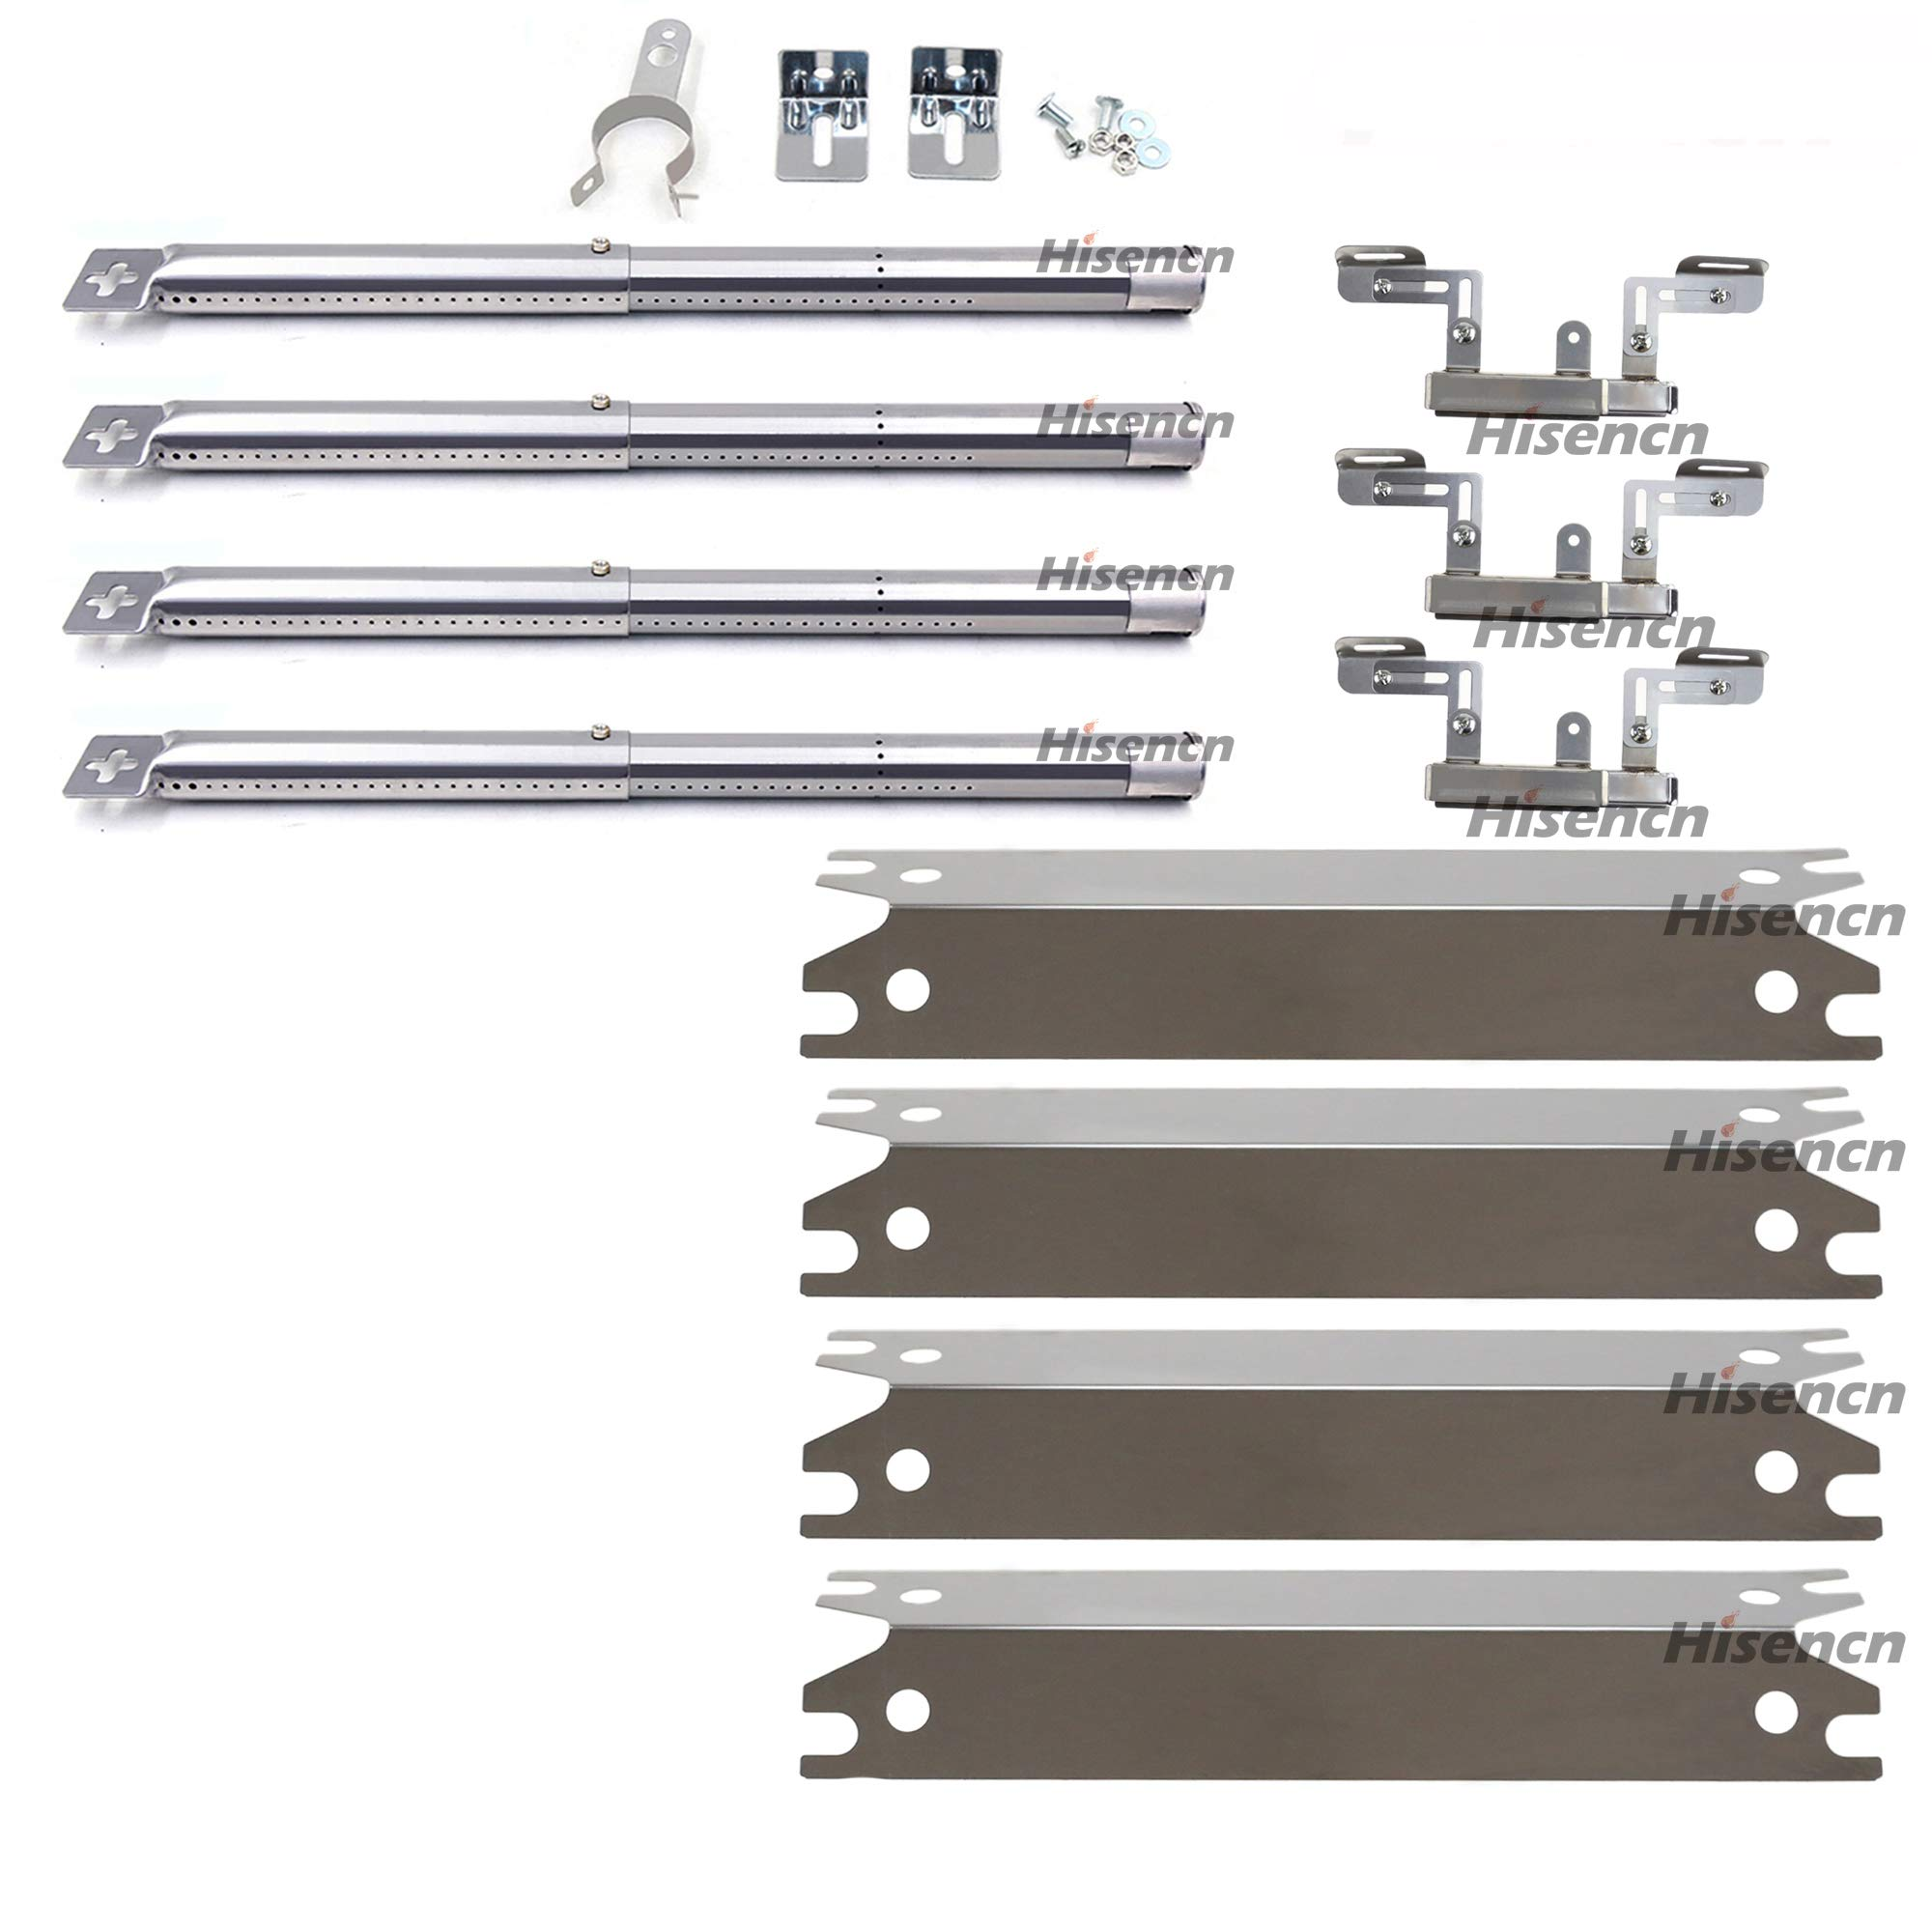 Hisencn Stainless Steel Heat Plates, Burners and Carryover Tube Replacement Parts for Brinkmann 810-2410-S, 810-2411-F, 810-2411-S, 810-3885-F, 810-3885-S, 810-4238-0, 810-9490-0 Gas Grill Models